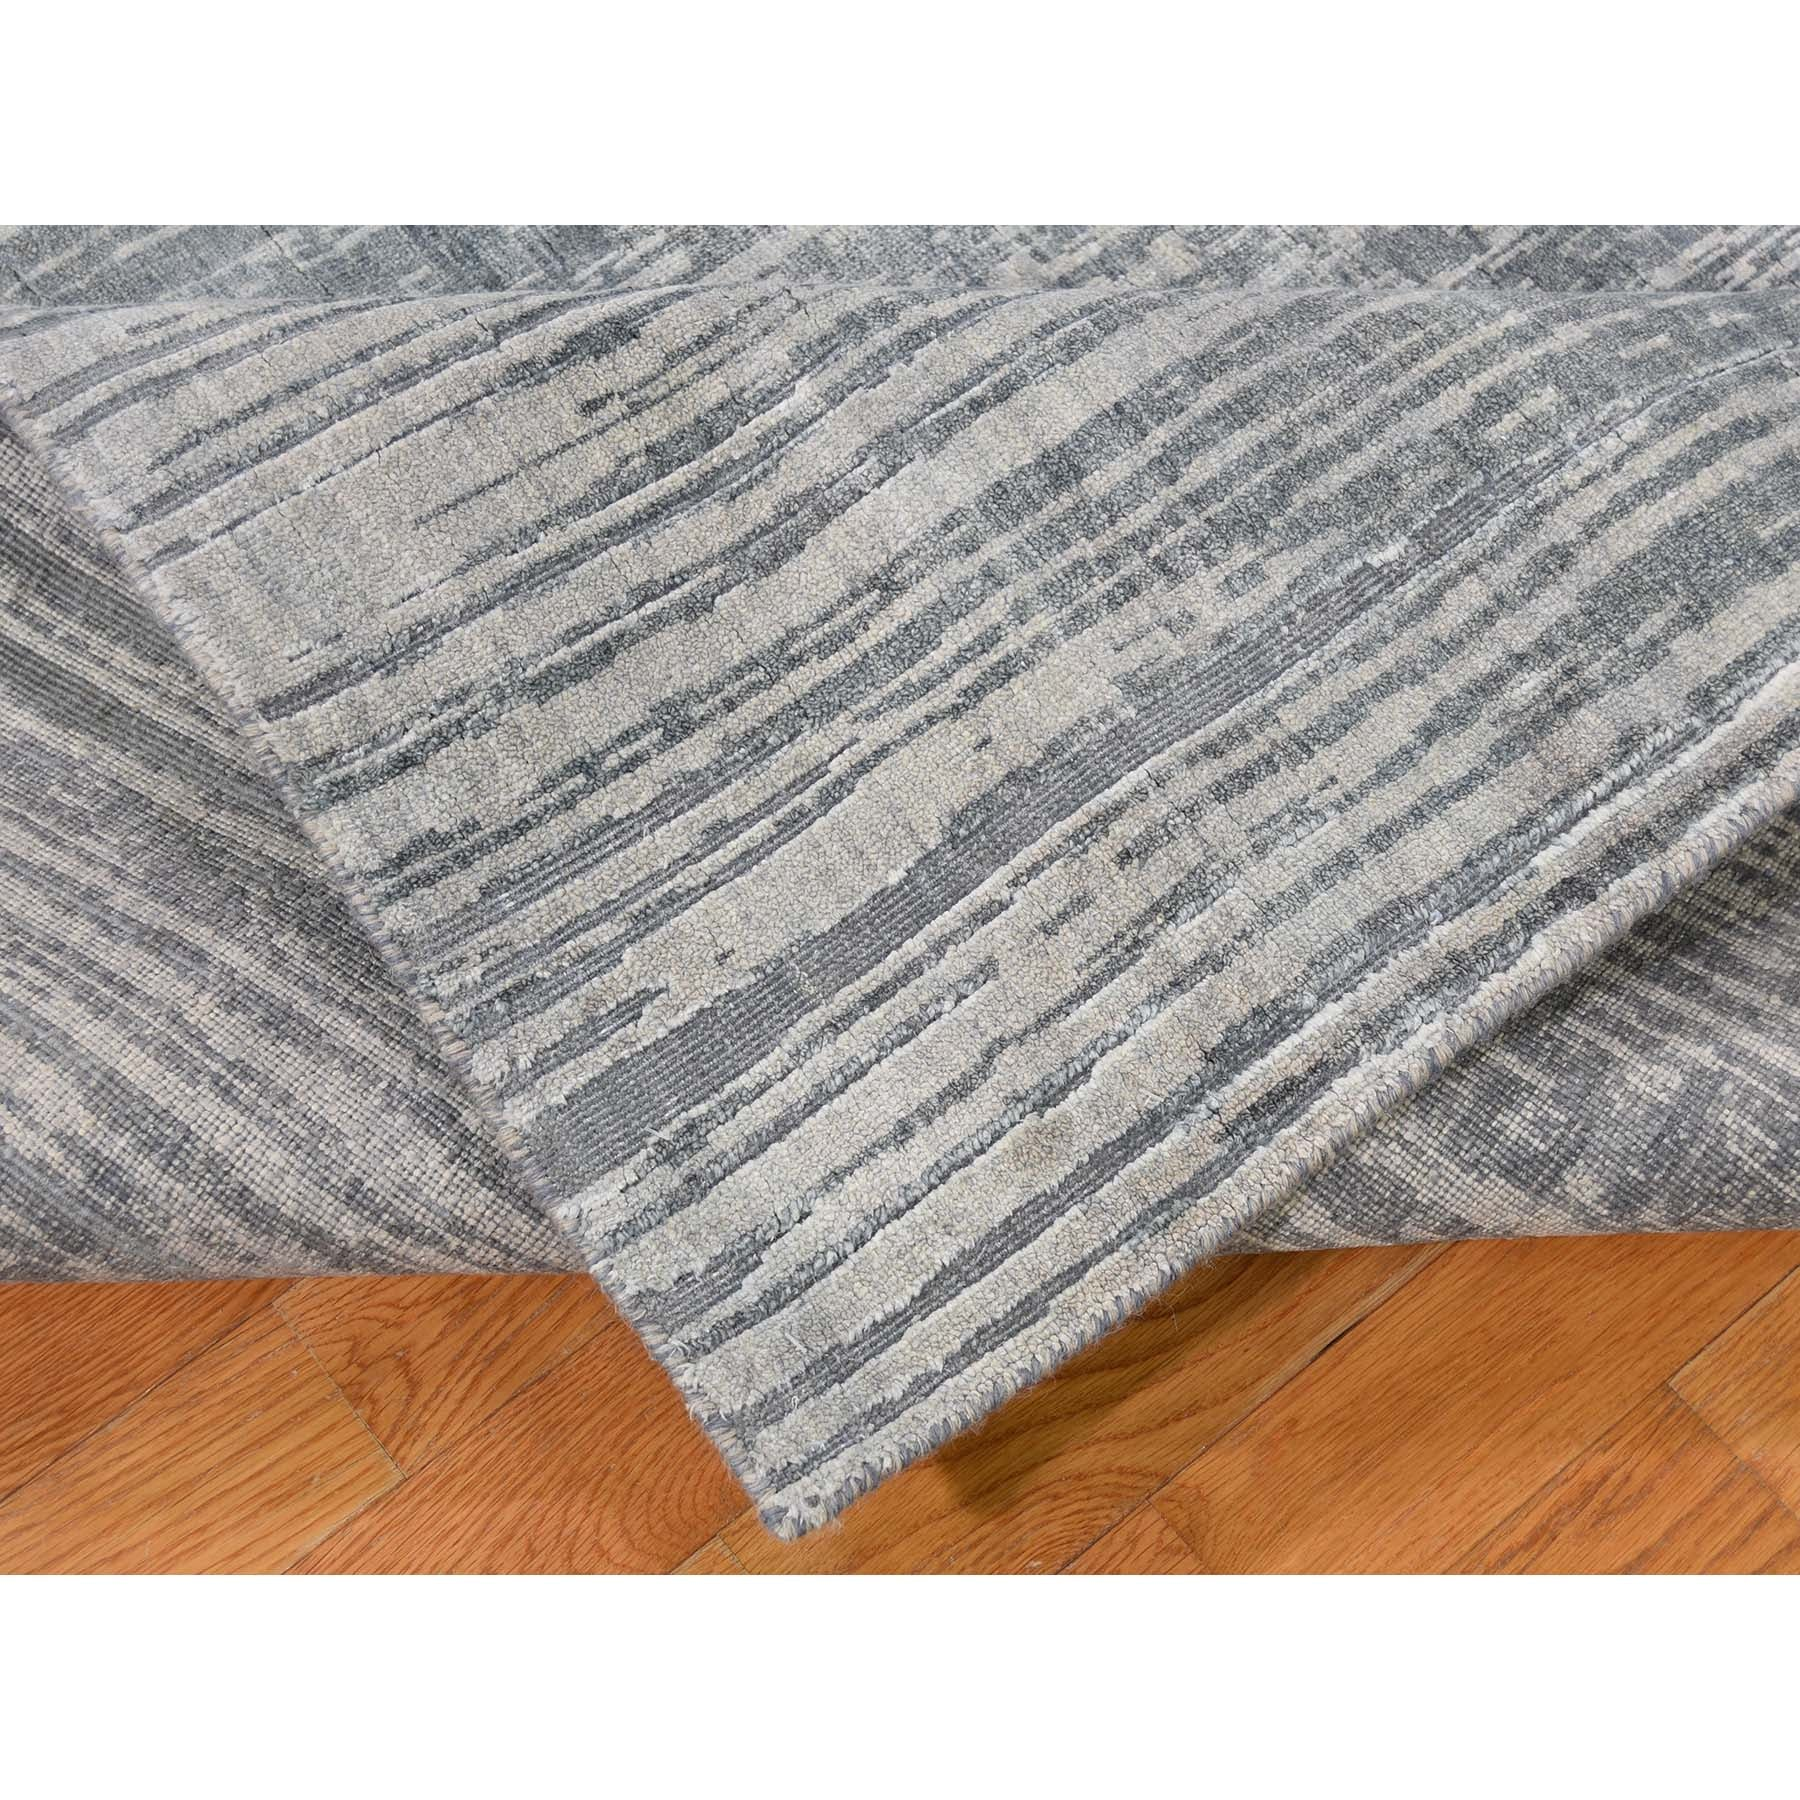 "Handmade Modern and Contemporary Rectangle Rug > Design# SH43411 > Size: 8'-0"" x 10'-4"" [ONLINE ONLY]"